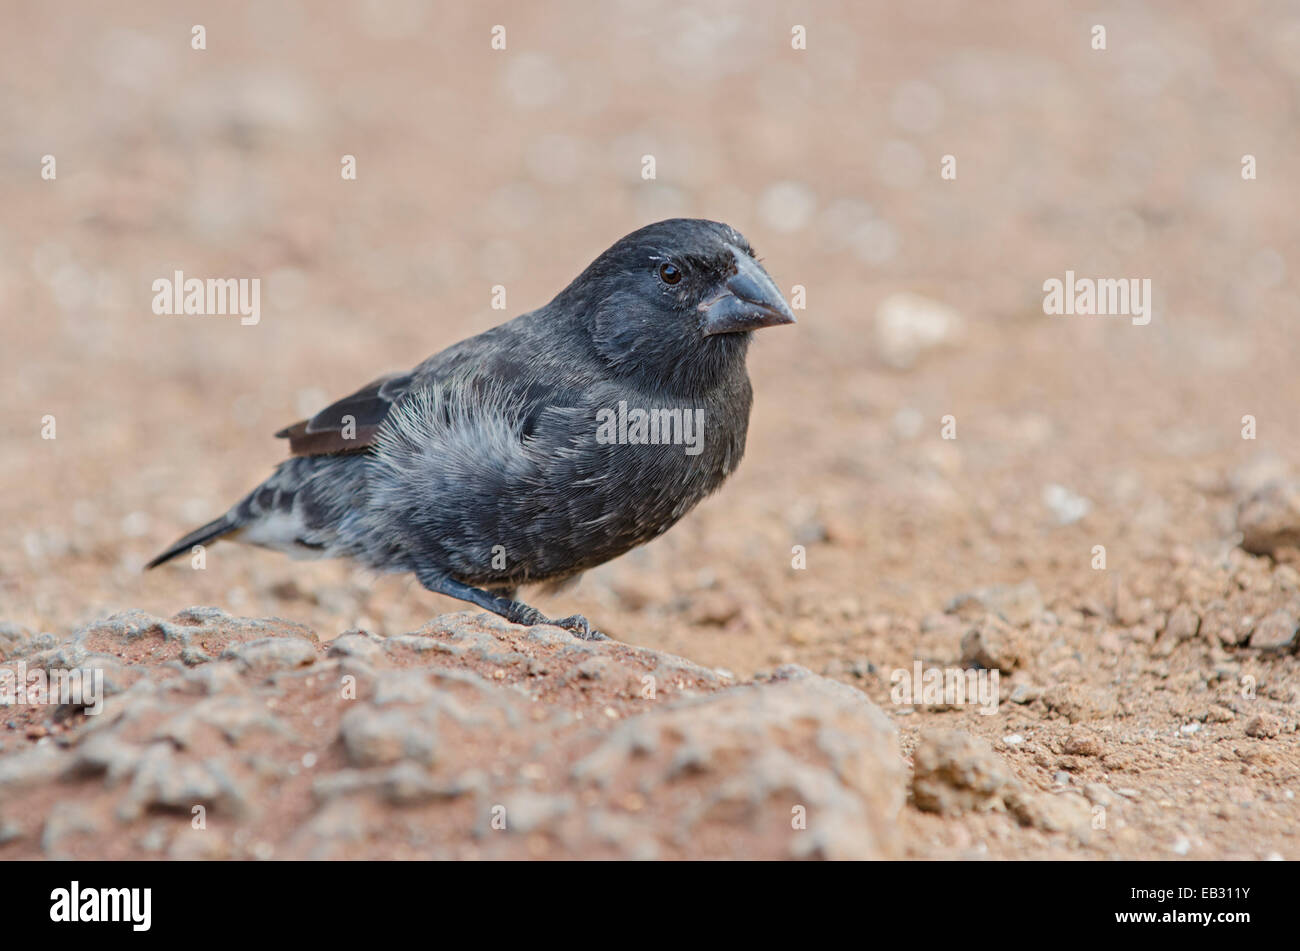 A male medium ground finch at the Charles Darwin Research Station in Puerto Ayora on  Santa Cruz Island in Galapagos - Stock Image